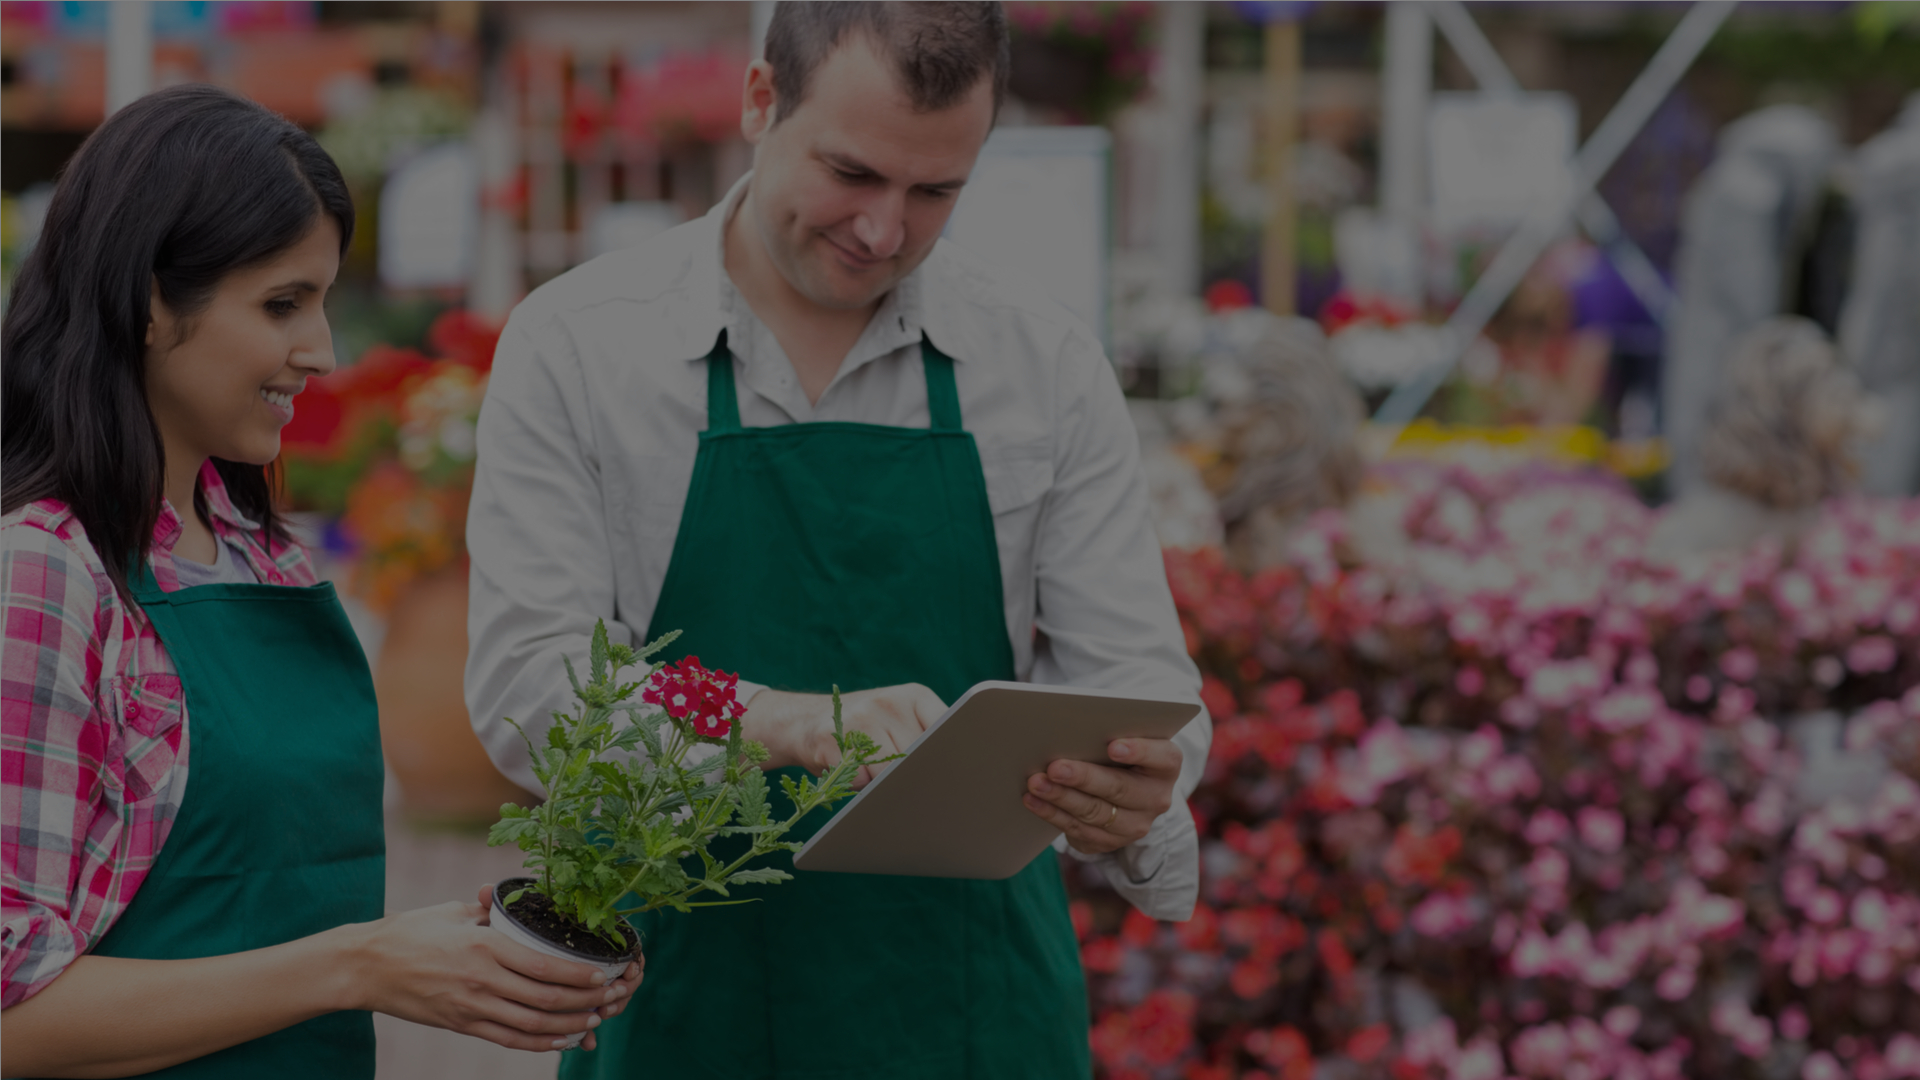 Retail Garden Centres: How To Integrate Your Current Safety Management With the Cloud